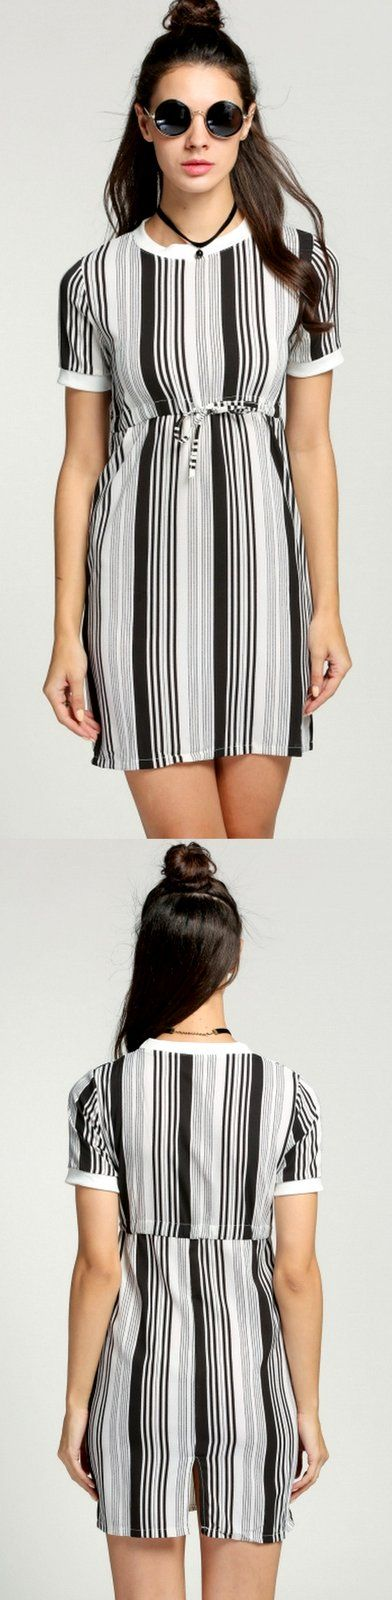 New Fashion Striped Mini Dress $15.99 Only. Get Additional 10% Off your first order at www.pescimoda.com #Dresses #CasualDresses #SummerDresses #DressesForTeens #White #Backless #PartyDresses #EverydayDresses